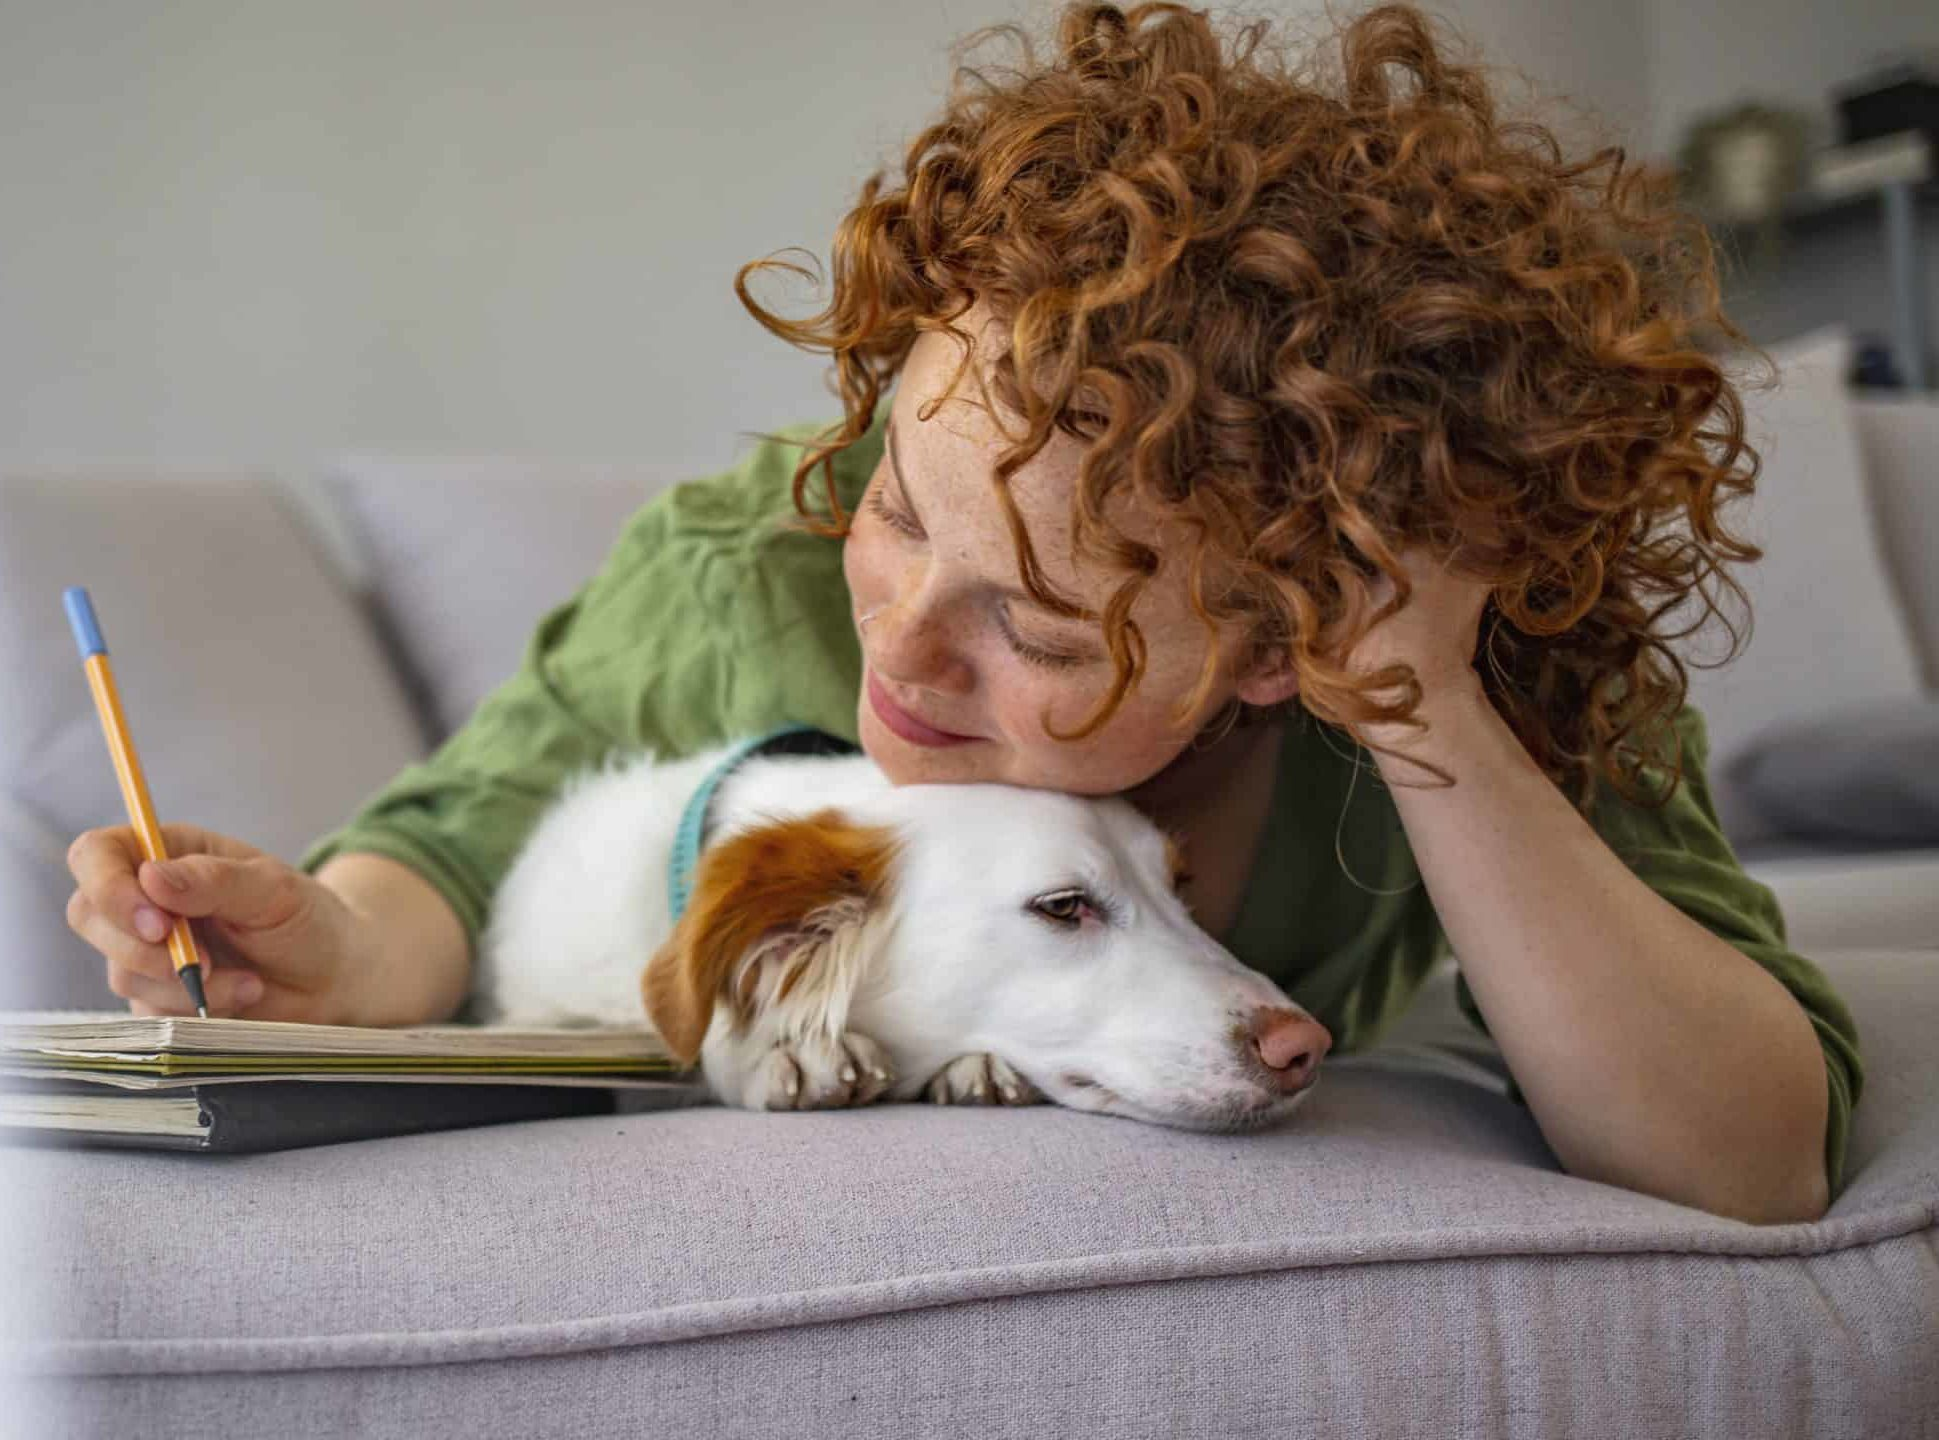 Woman cuddles with dog while studying. Bring your pet to college to help you manage your homesickness and the stress of college life.